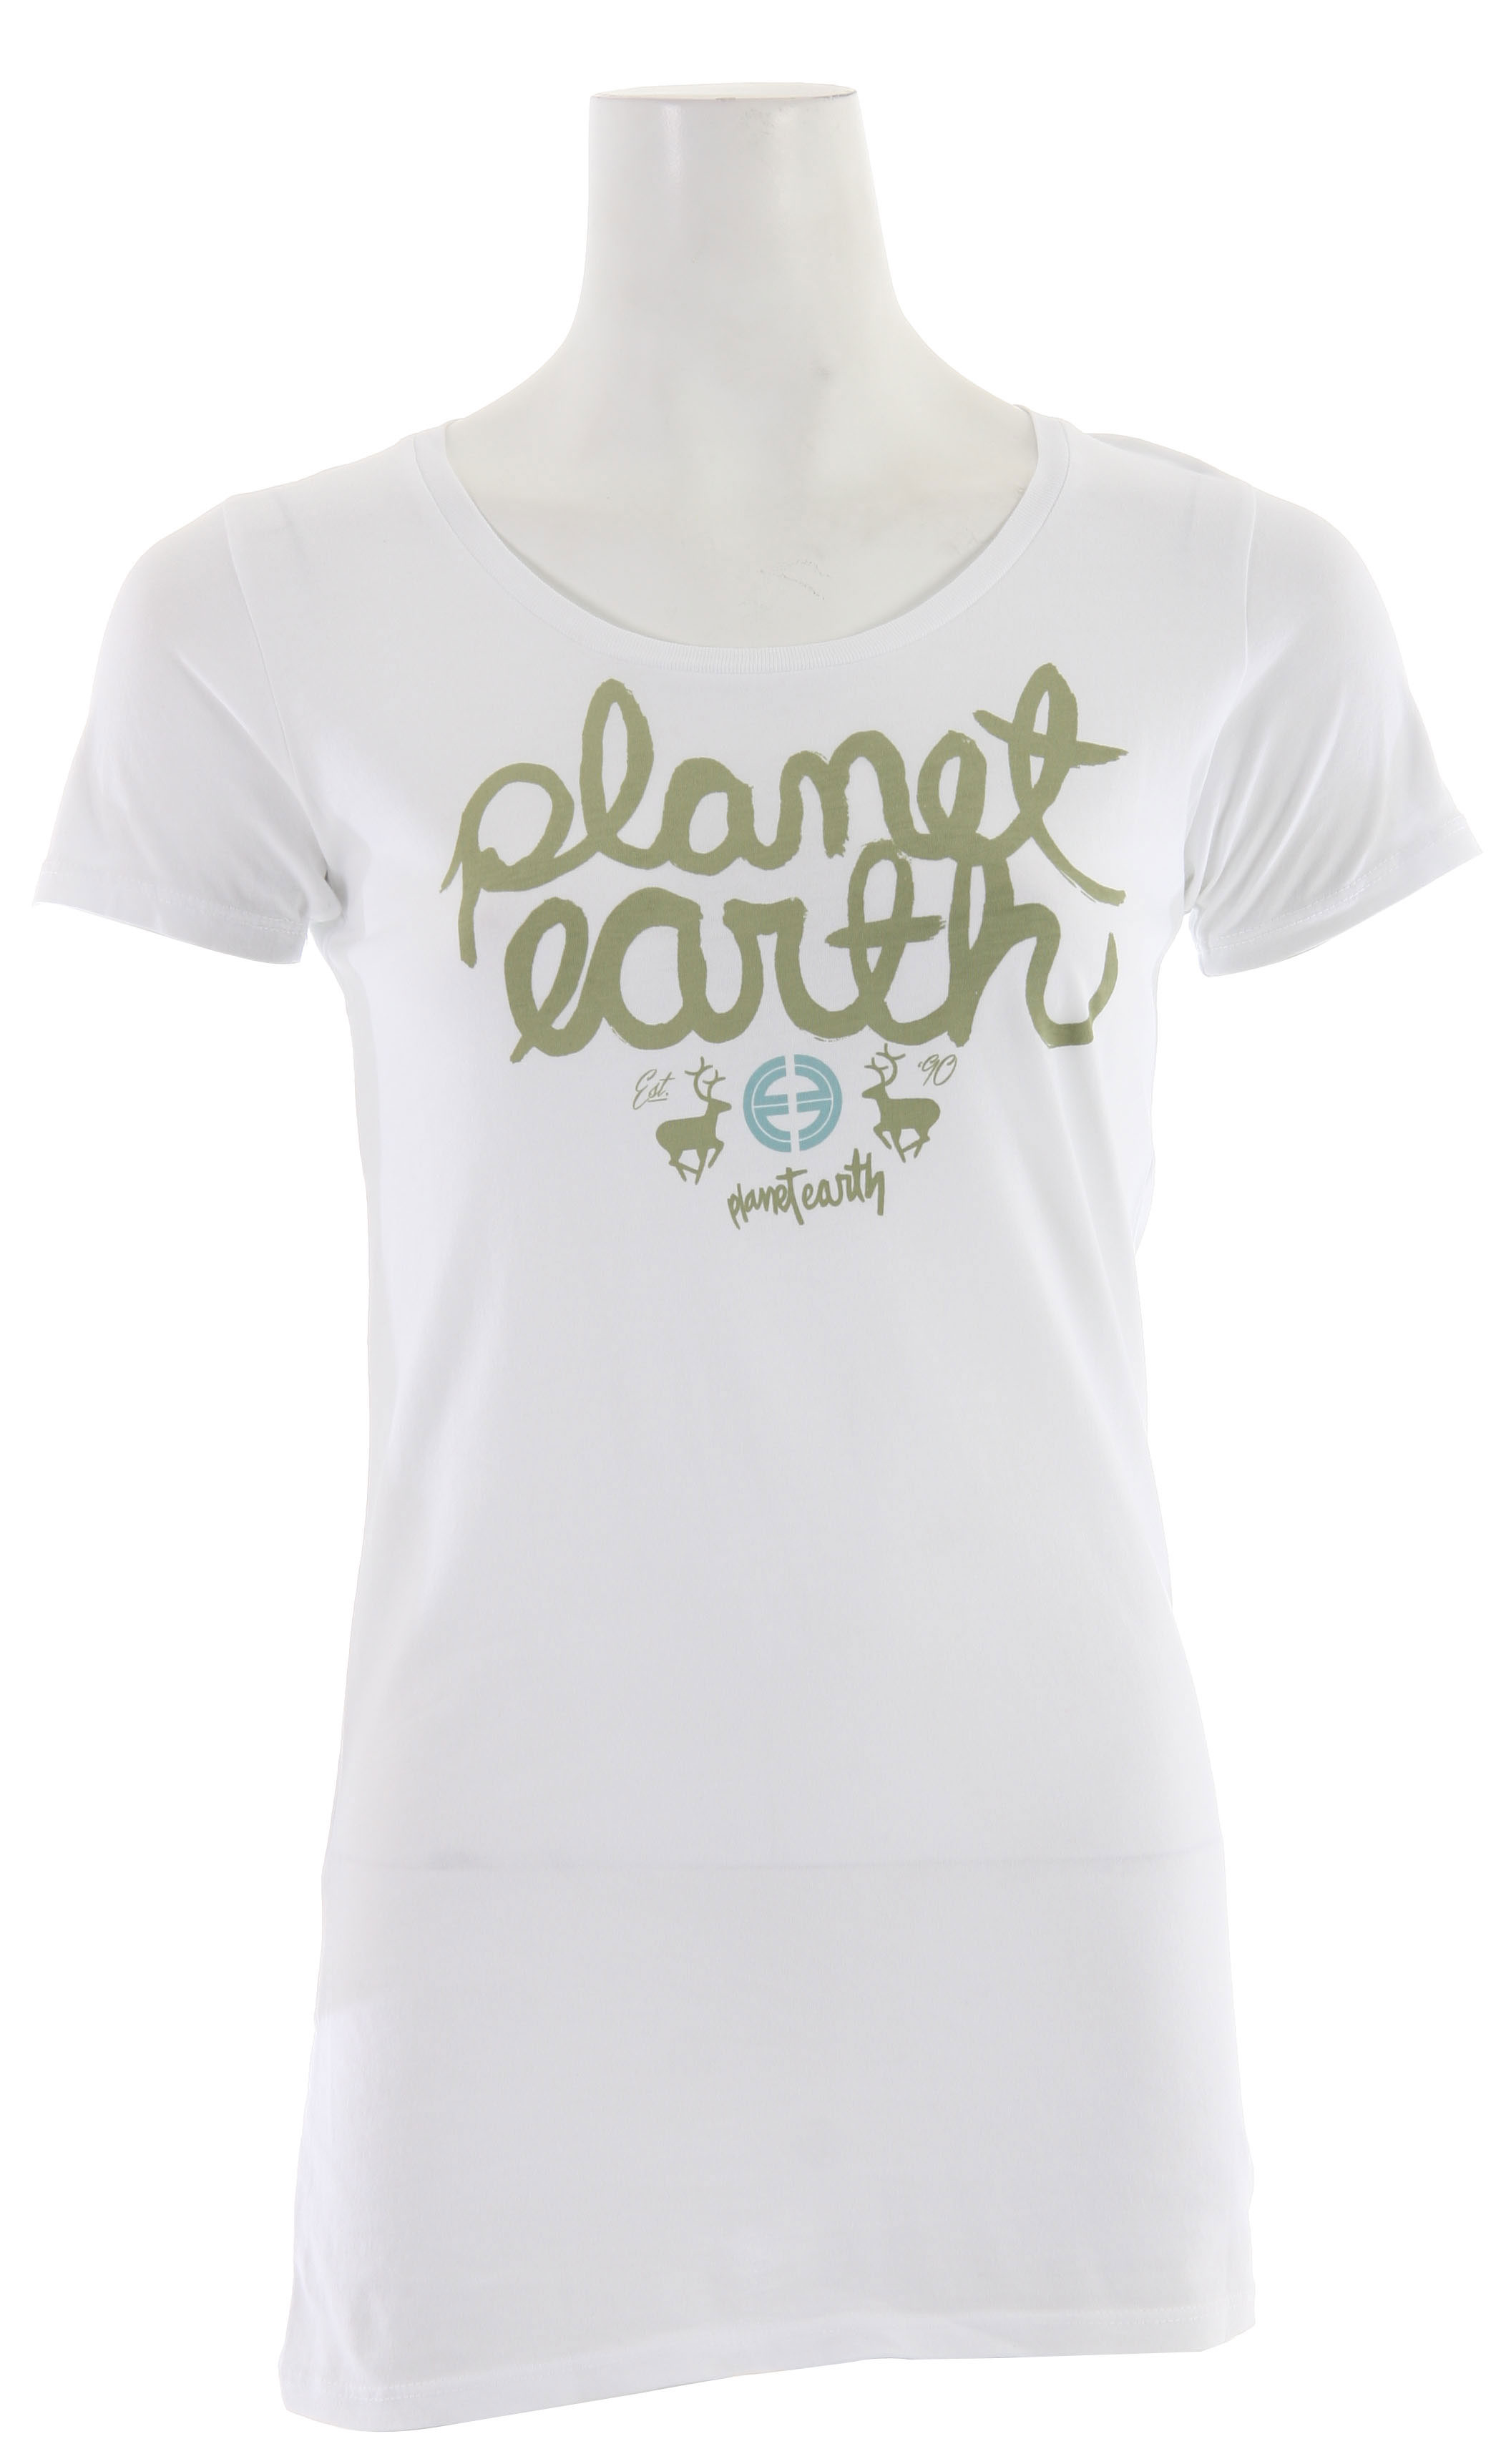 Planet Earth Cooper S/S T-Shirt - $7.95